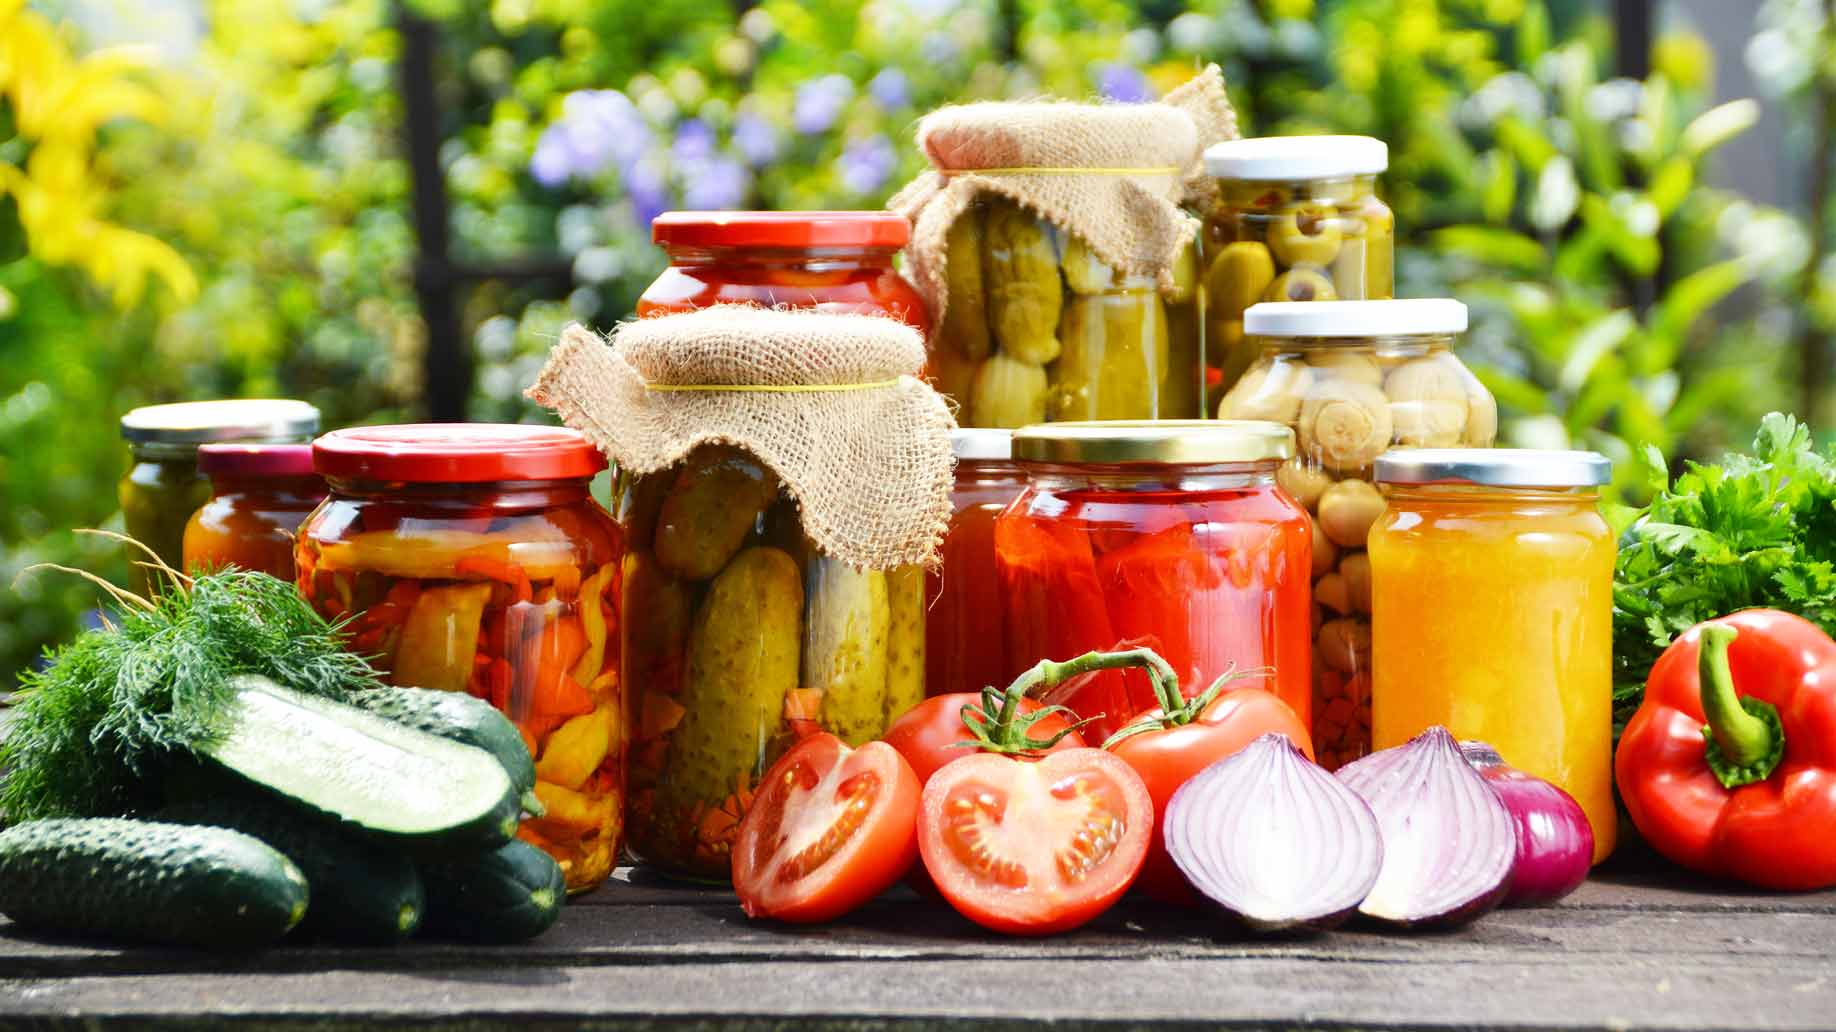 jars of preserved vegetables